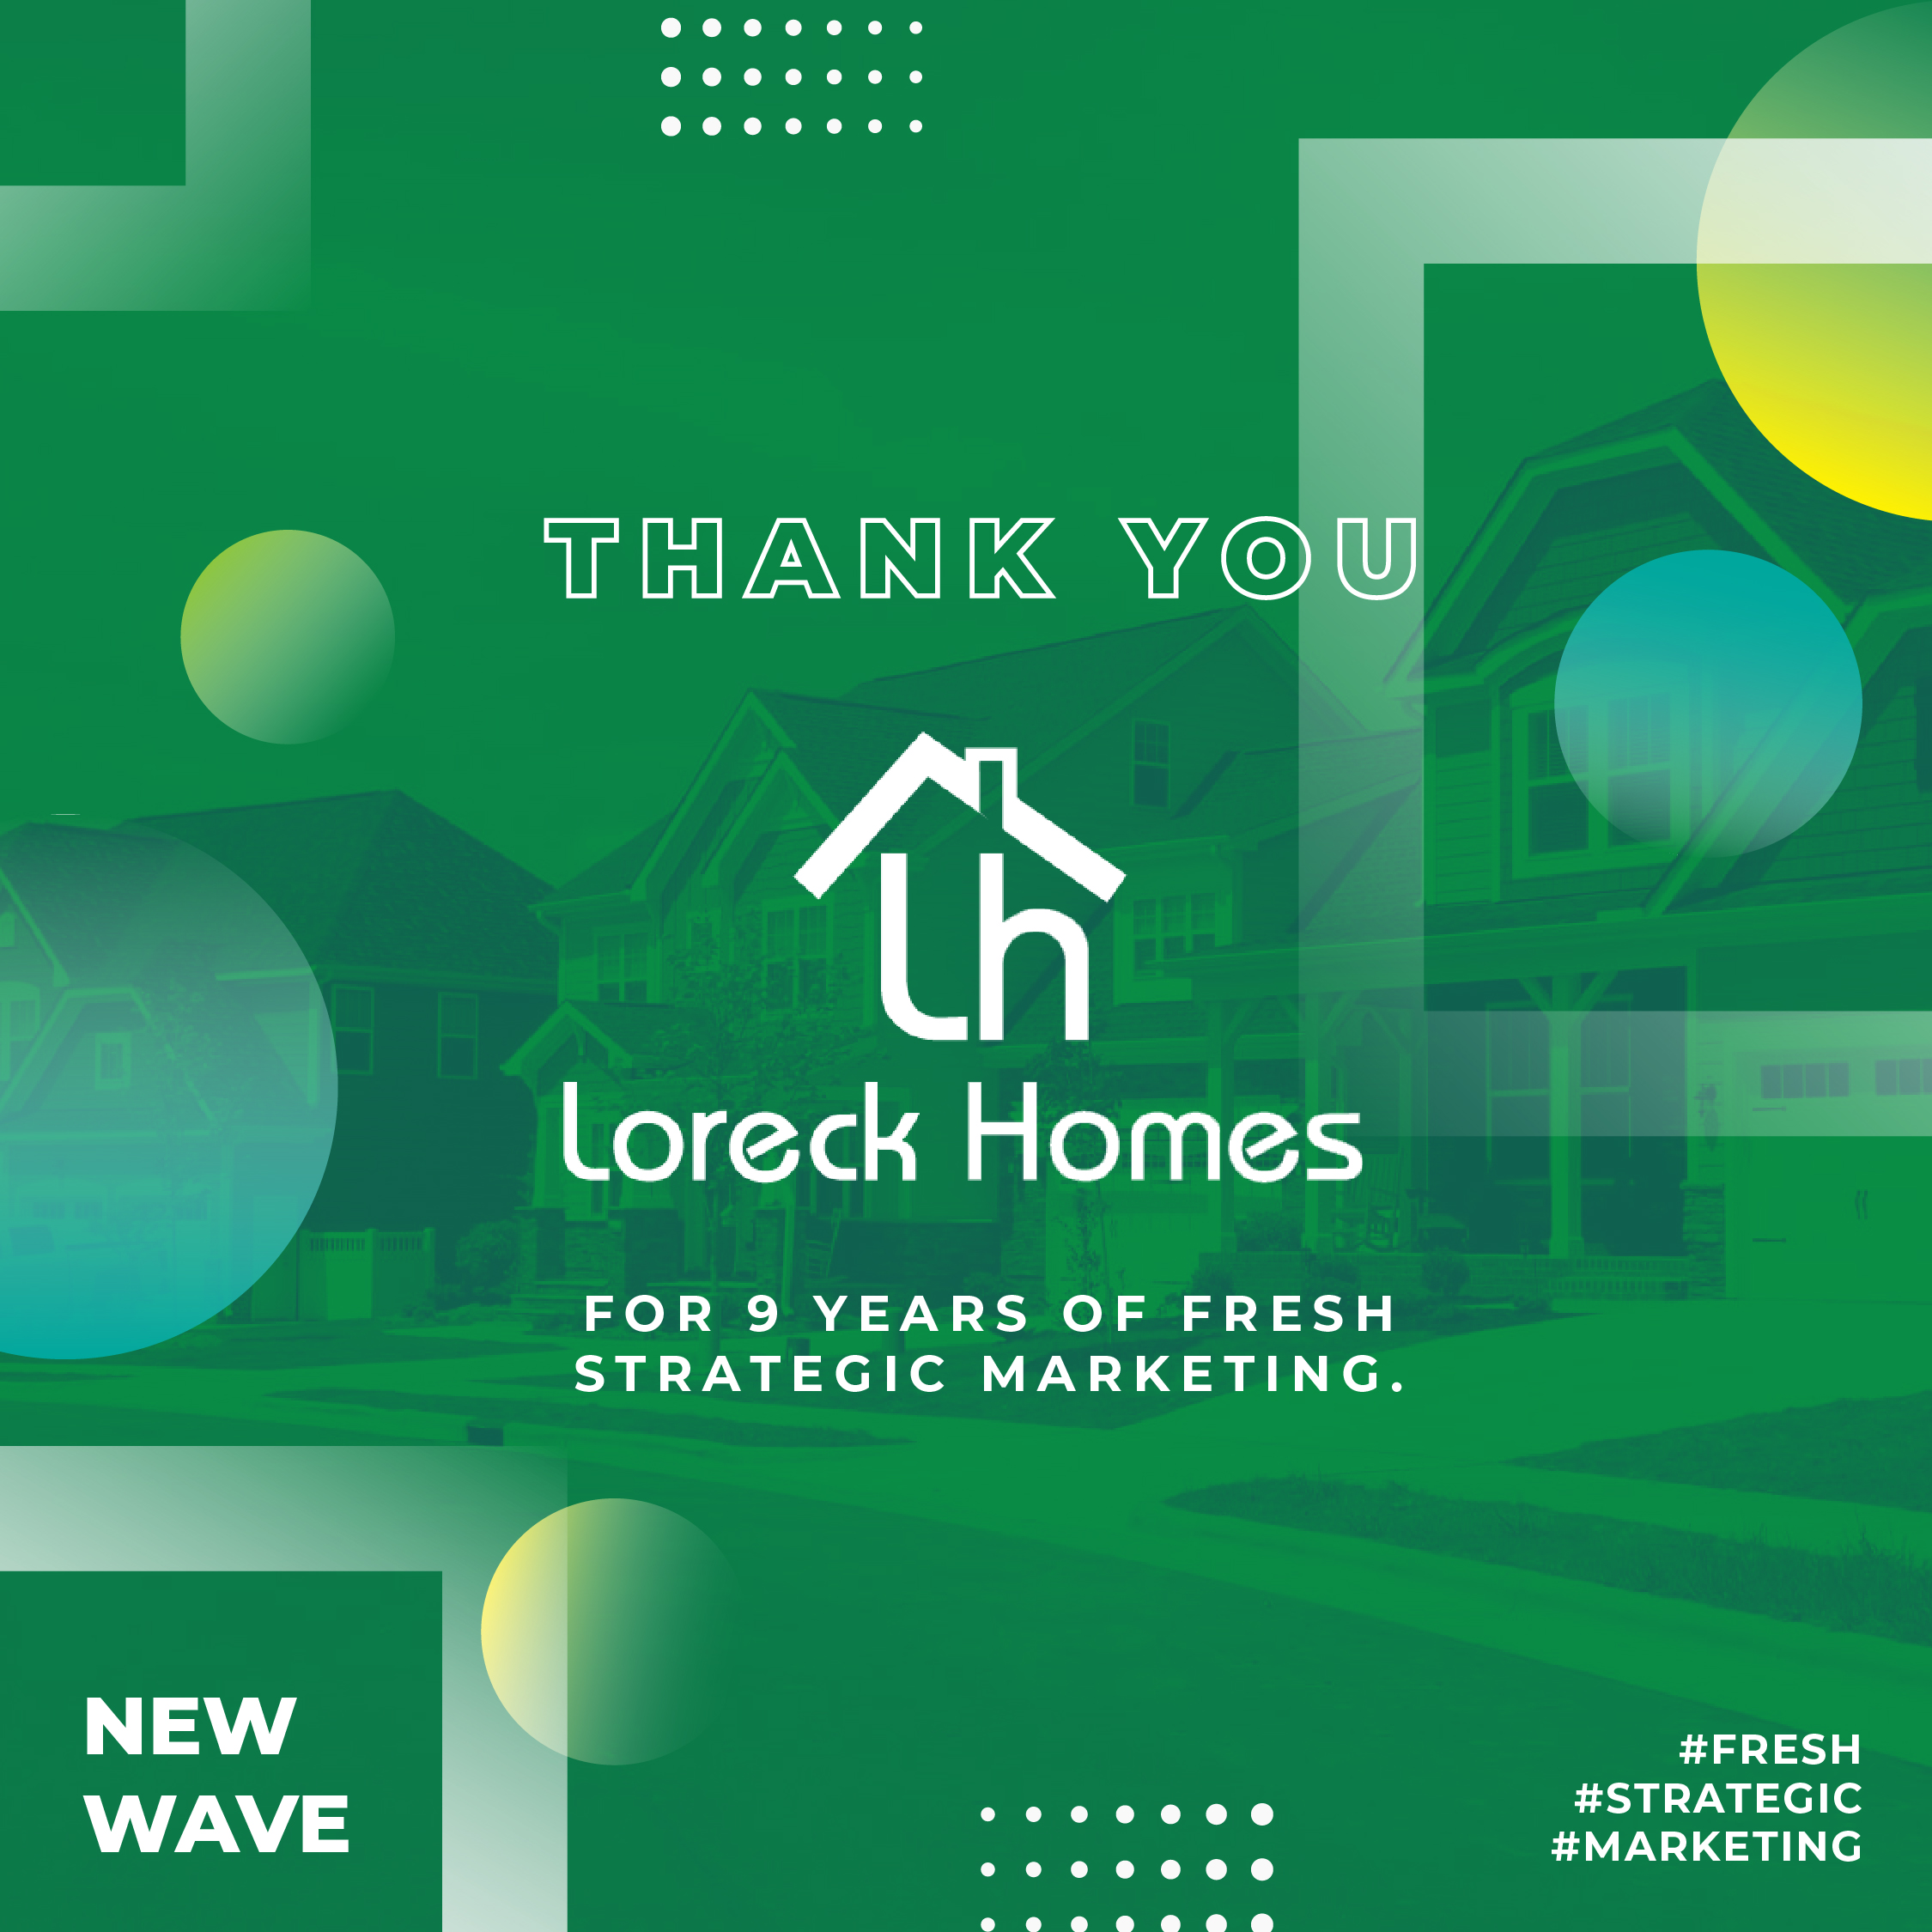 Loreck Homes and New Wave for 9 years